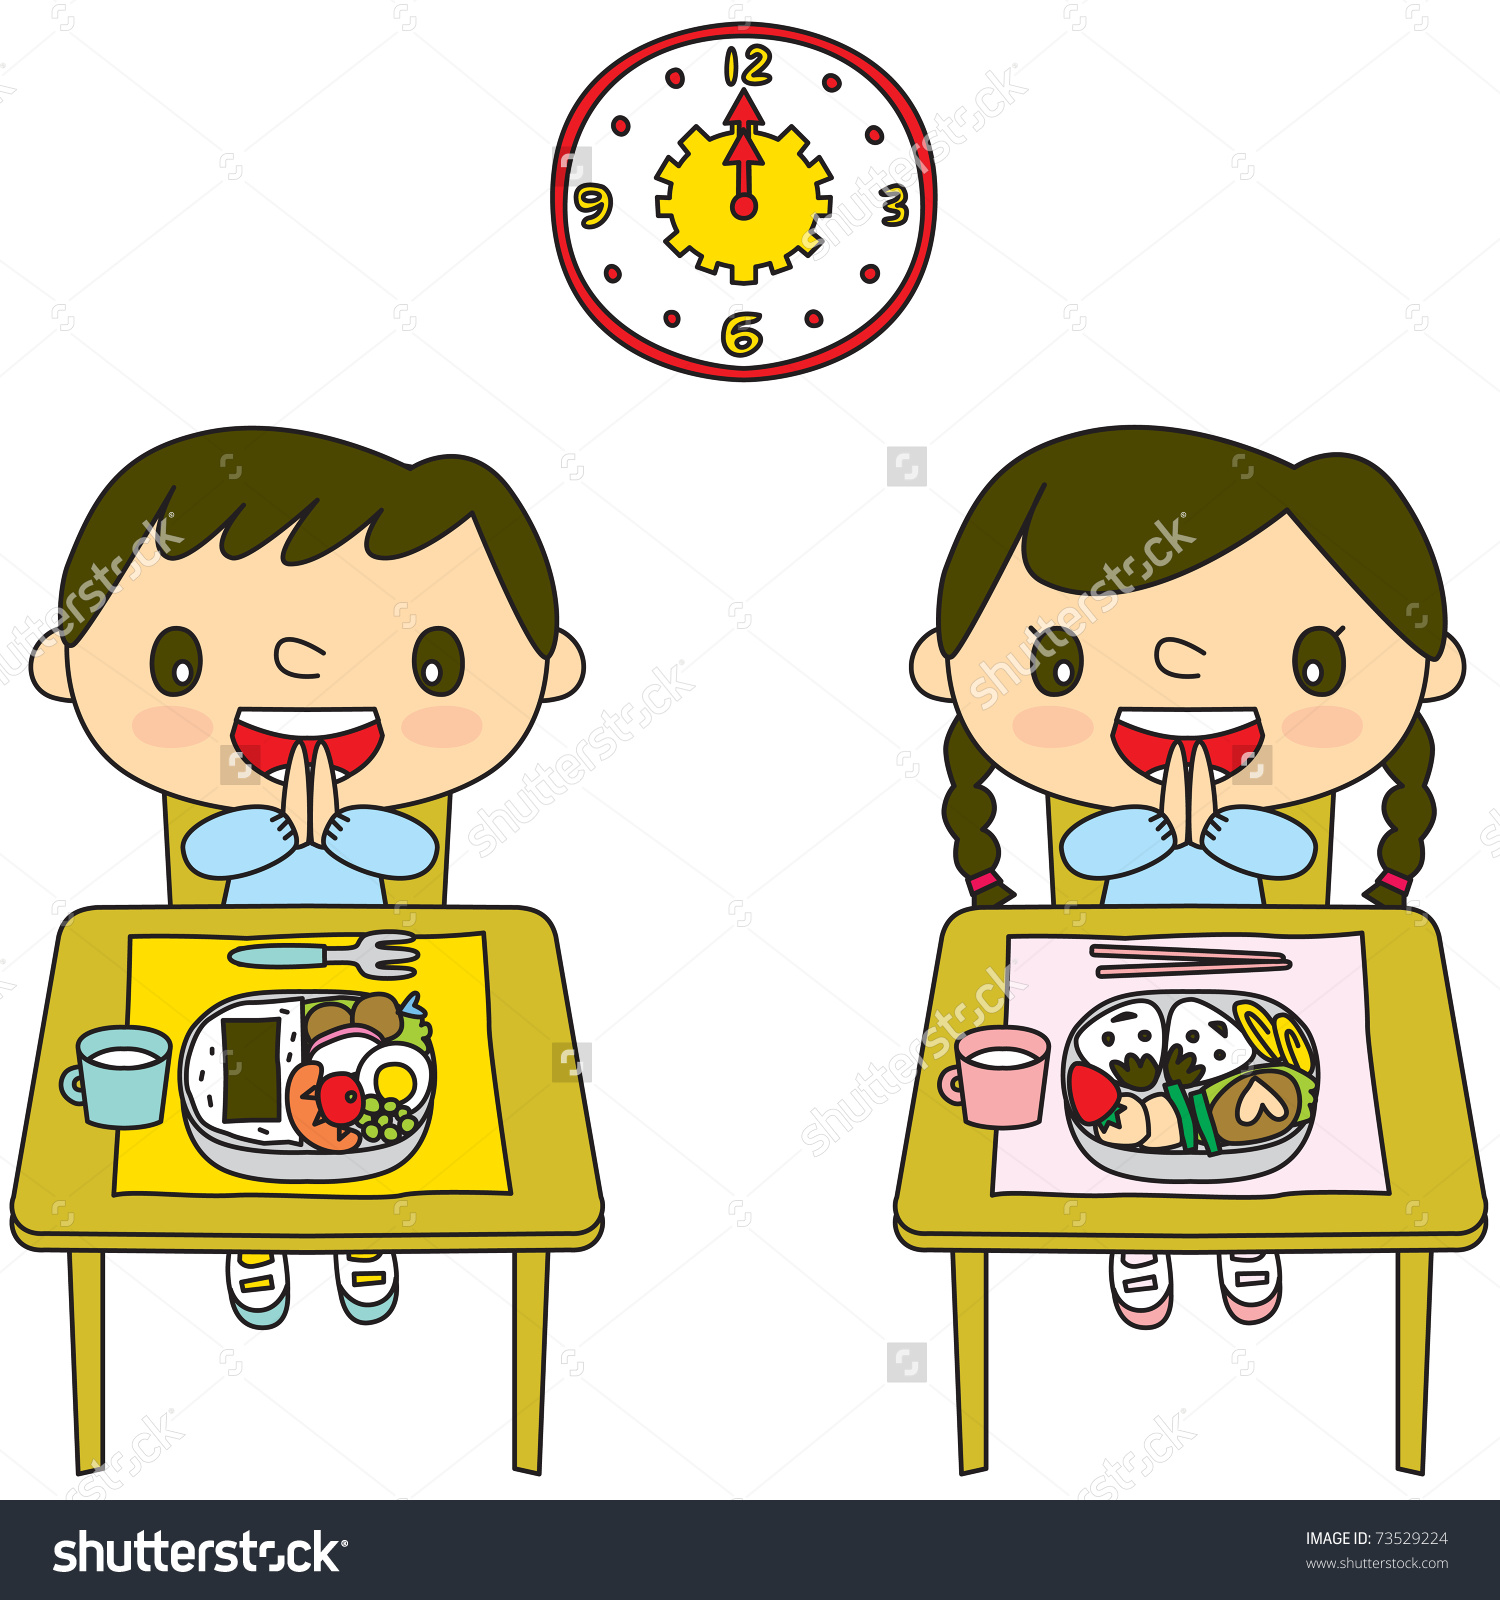 Child clipart lunch time Time Clipart of lunch time